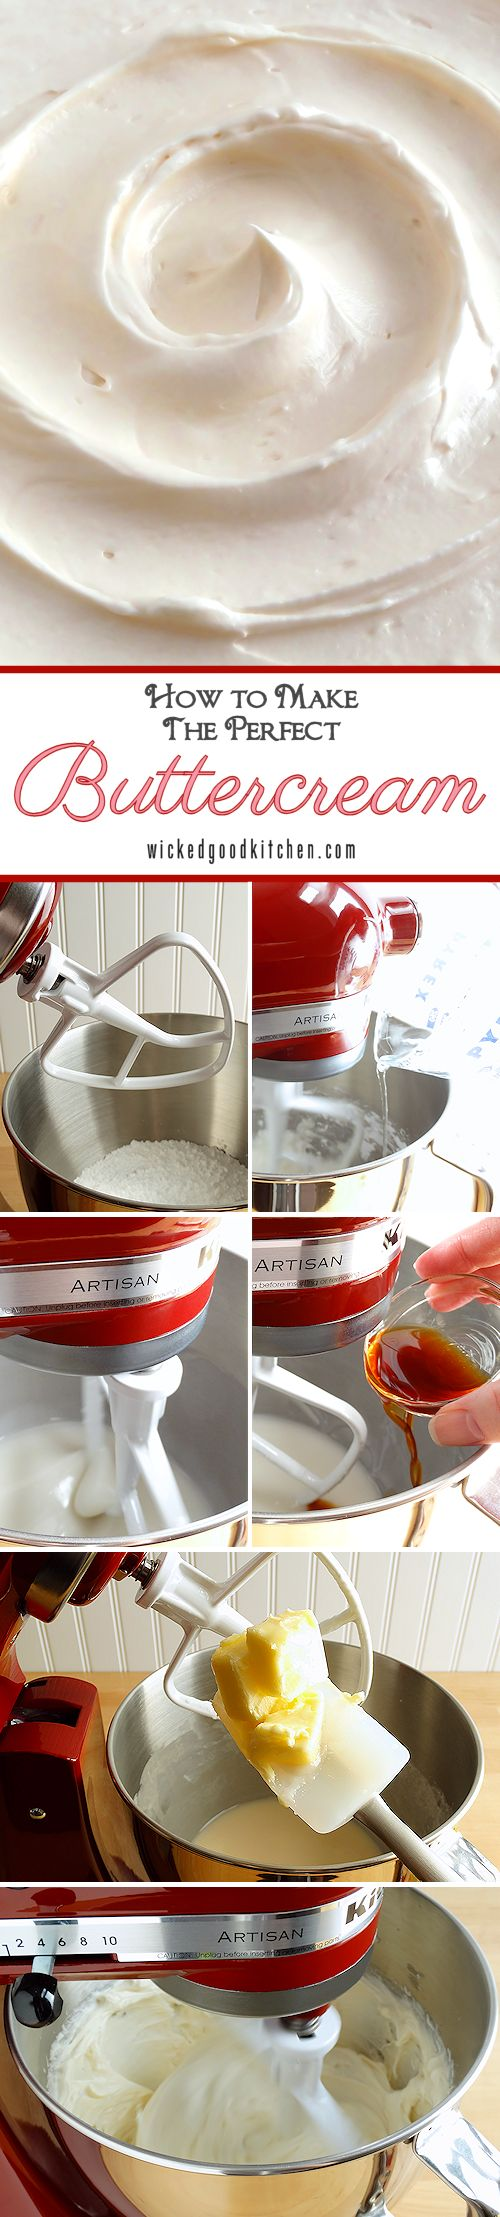 How to Make the Perfect Buttercream Frosting {tutorial} by WickedGoodKitchen.com ~ Everything you need to know about making the perfect buttercream frosting with our recipe for Best Ever American Buttercream. Tutorial includes secret ingredients, a unique method, tips for handling and step-by-step directions and photos. This impressive recipe whips up in just 25 minutes! | dessert recipe